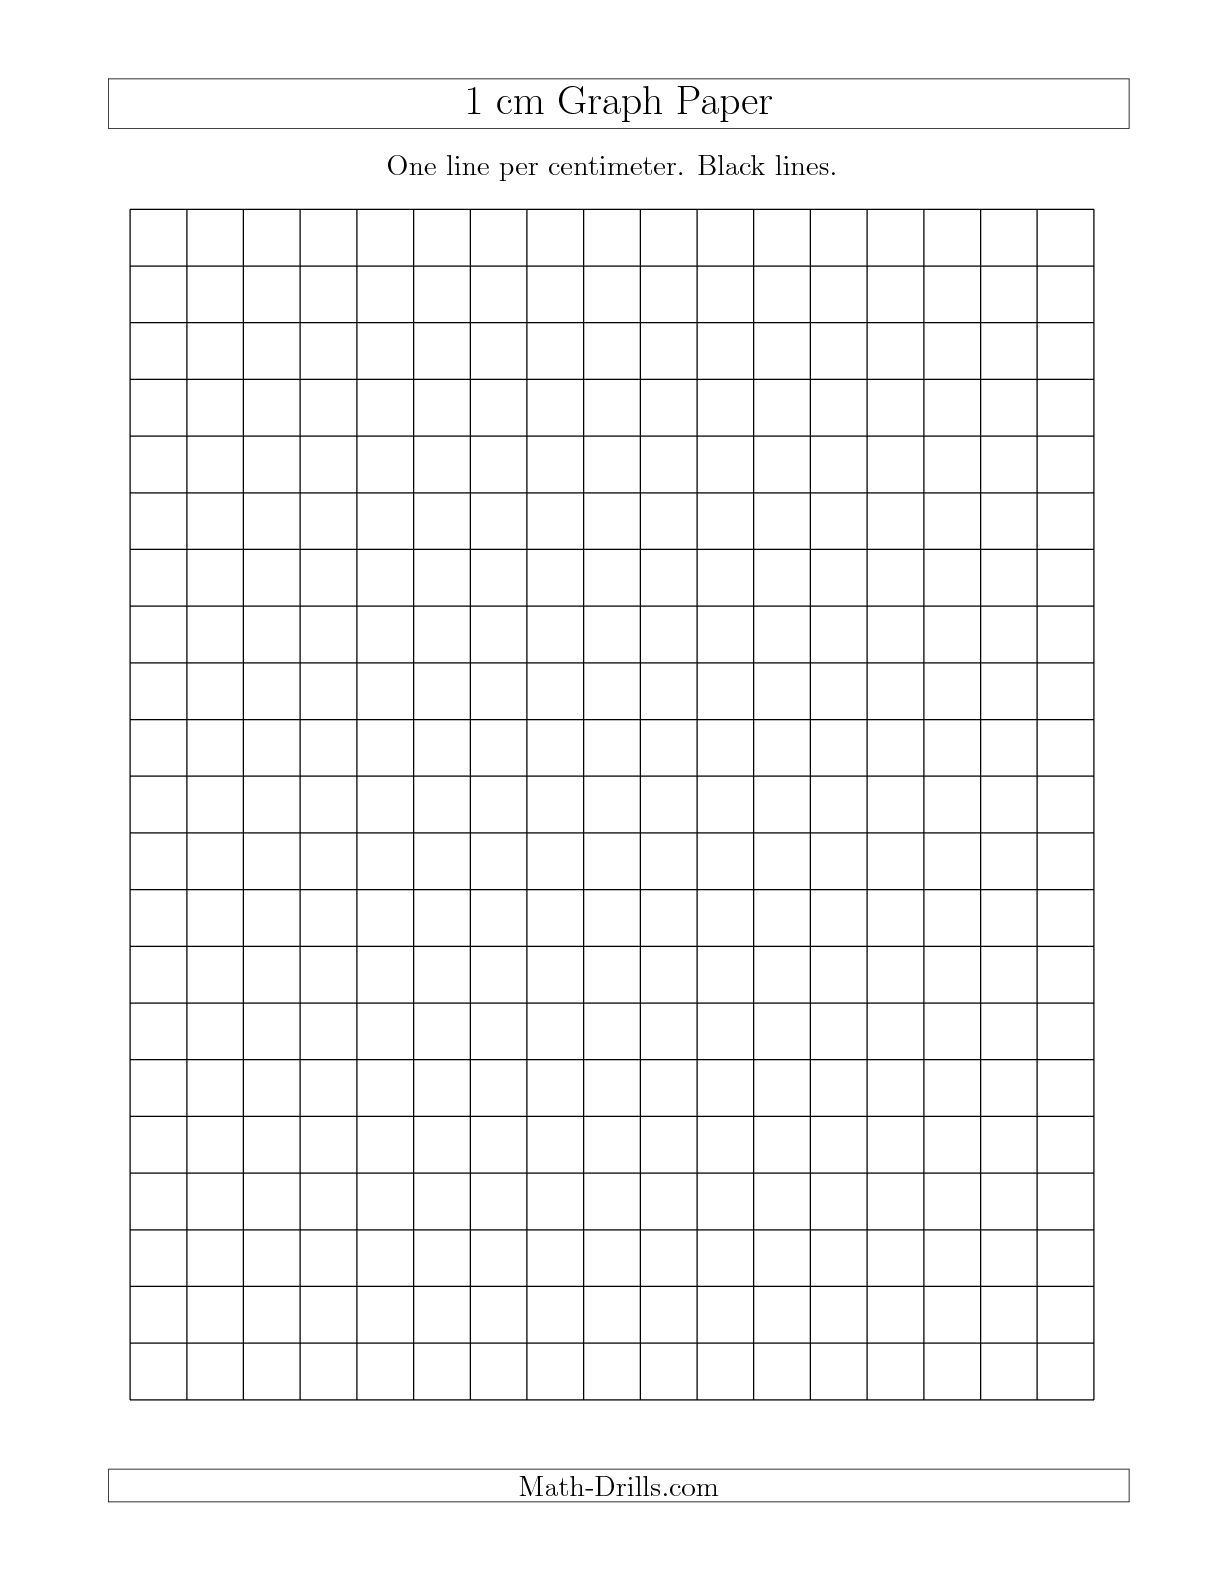 The 1 Cm Graph Paper With Black Lines A Math Worksheet